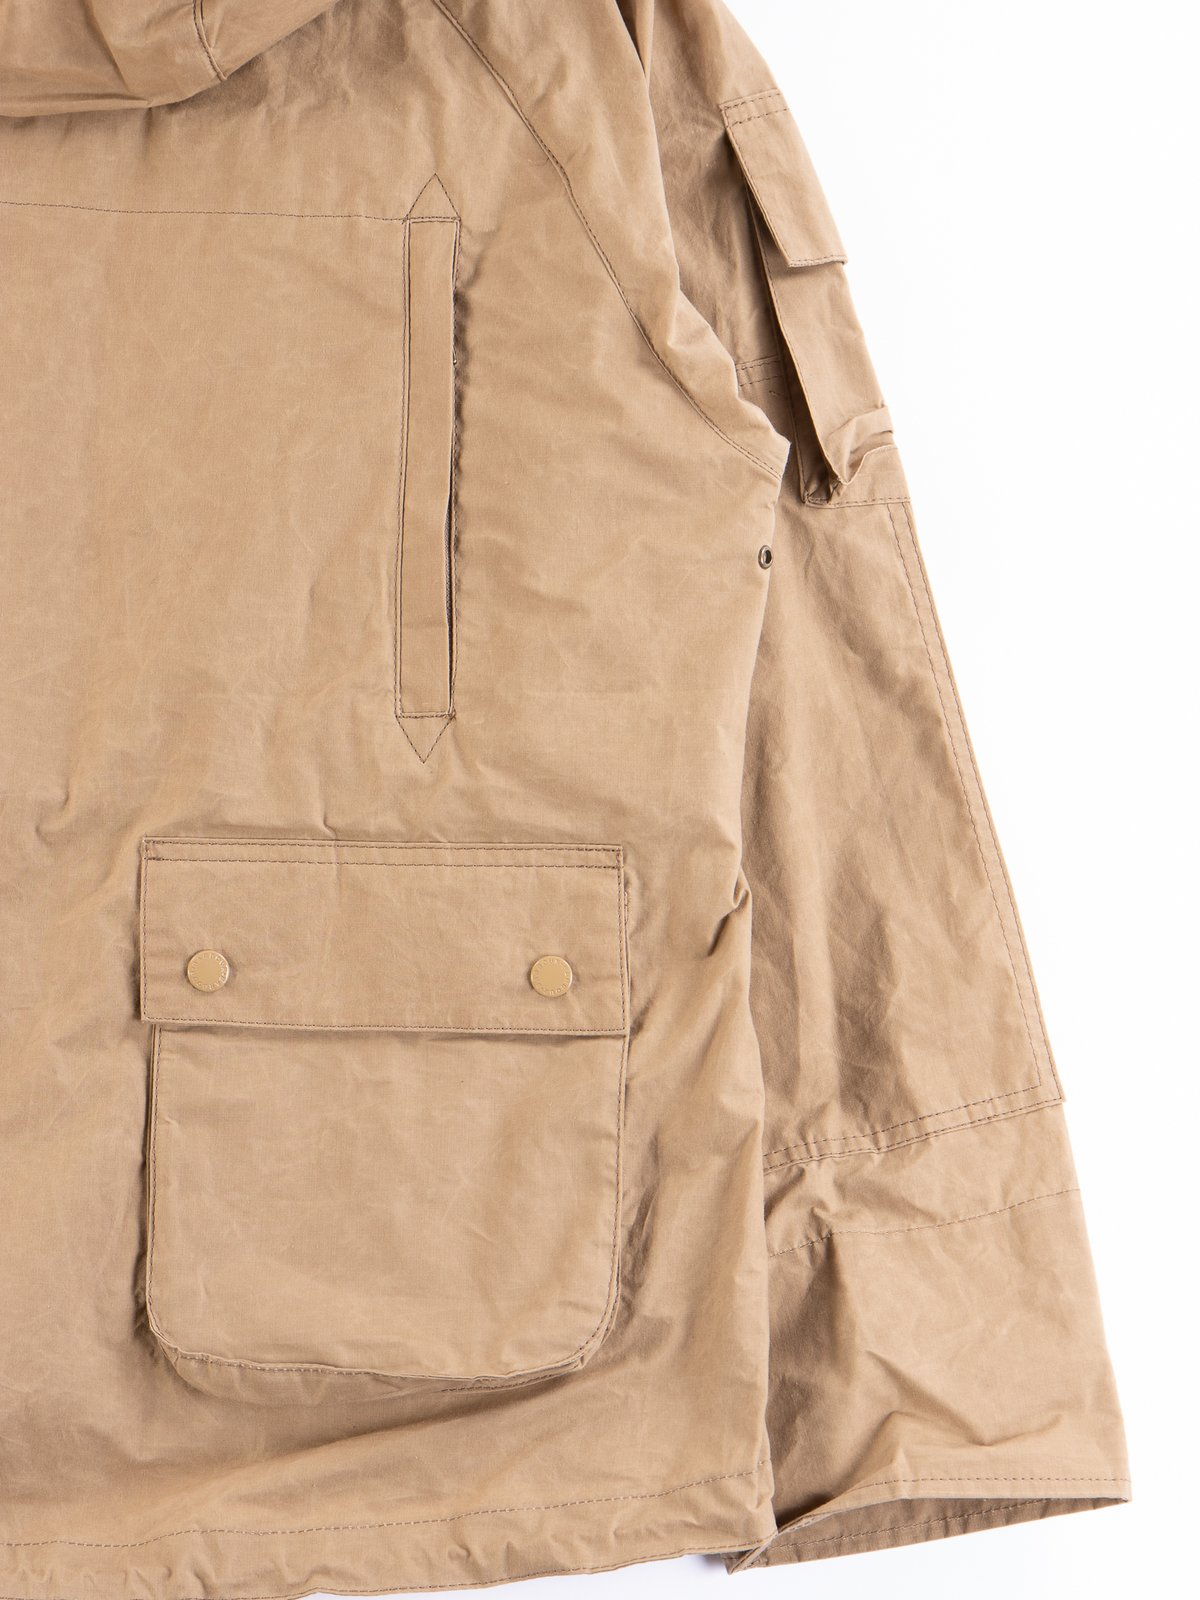 Sand Thompson Jacket - Image 7